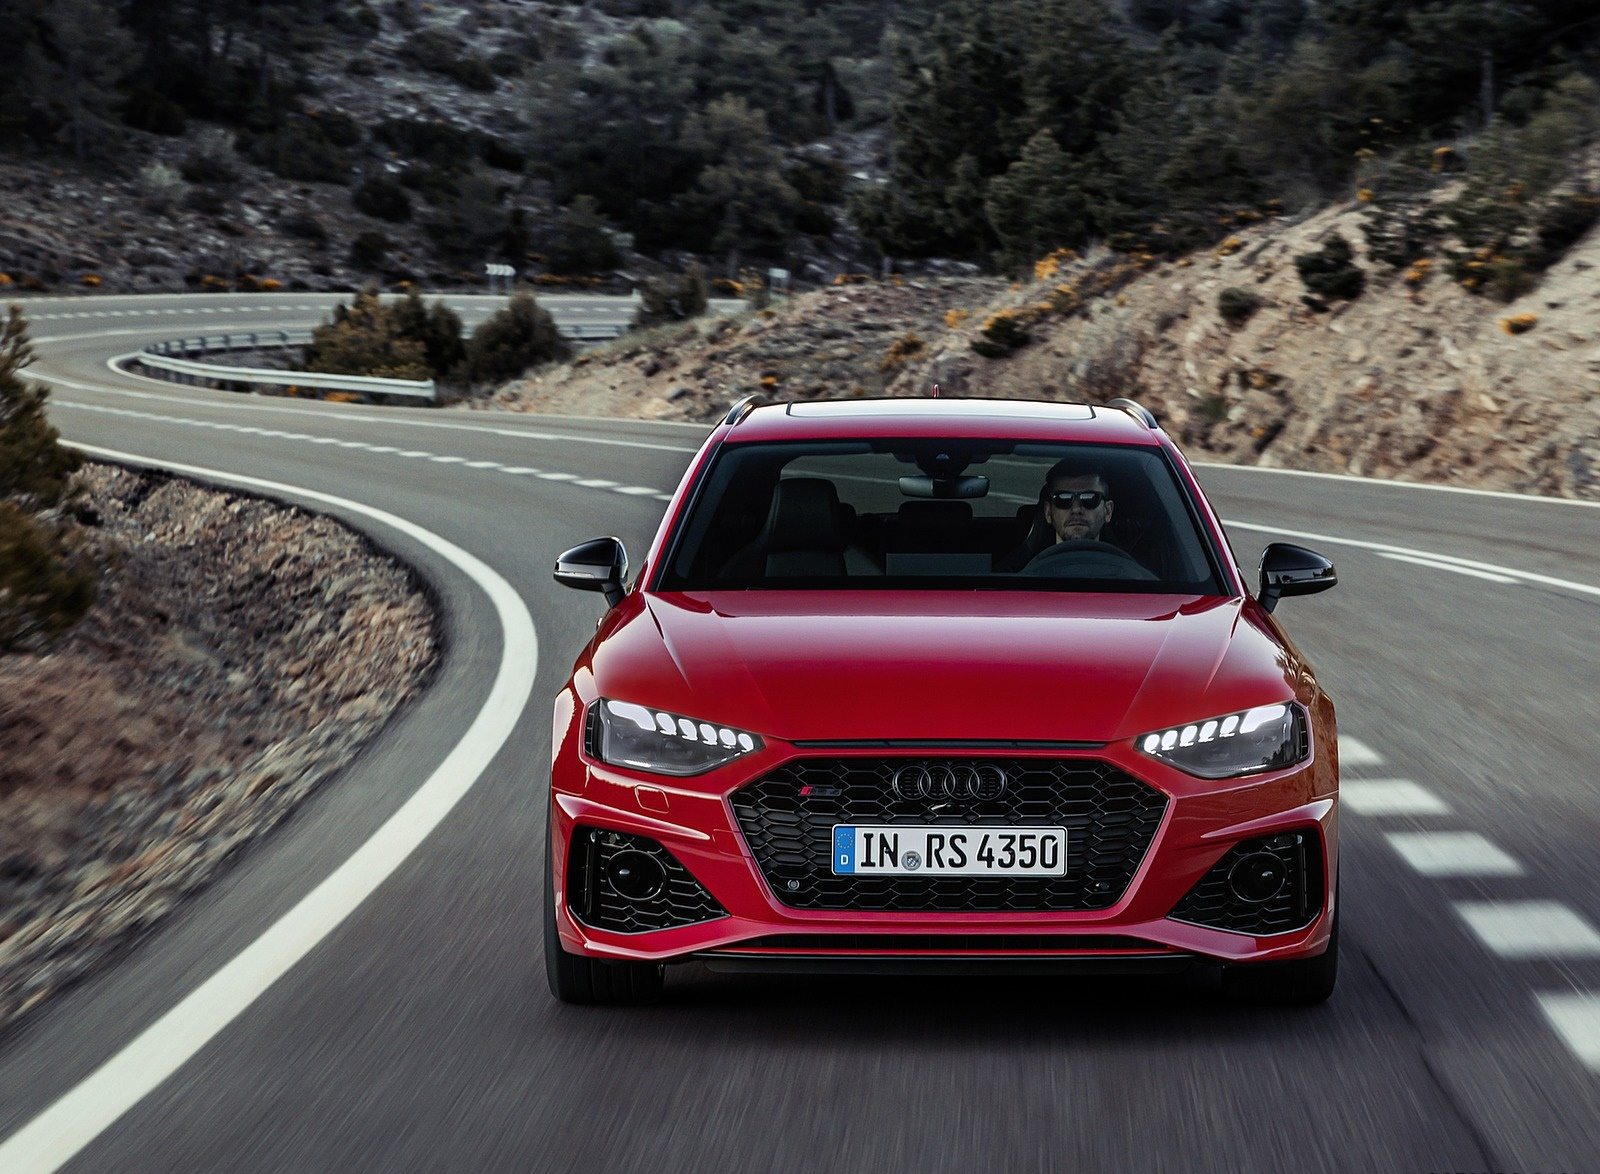 2020 Audi RS 4 Avant (Color: Tango Red) Front Wallpapers (2)